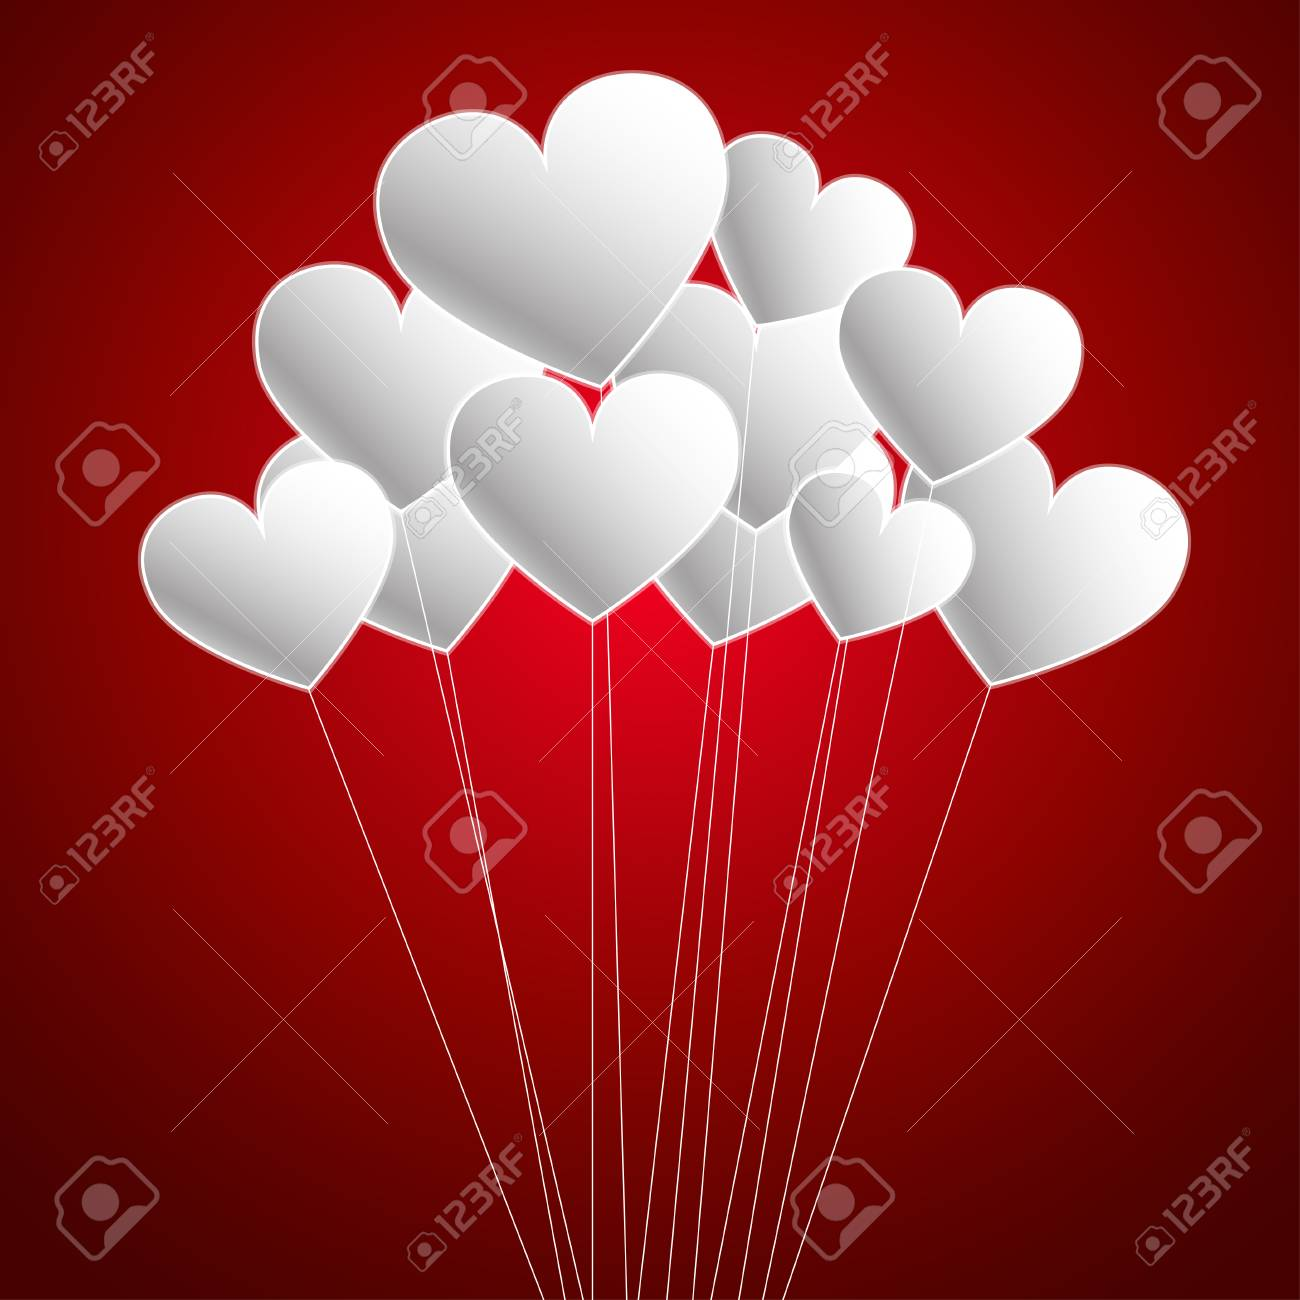 Happy Valentine S Day Balloons Royalty Free Cliparts Vectors And